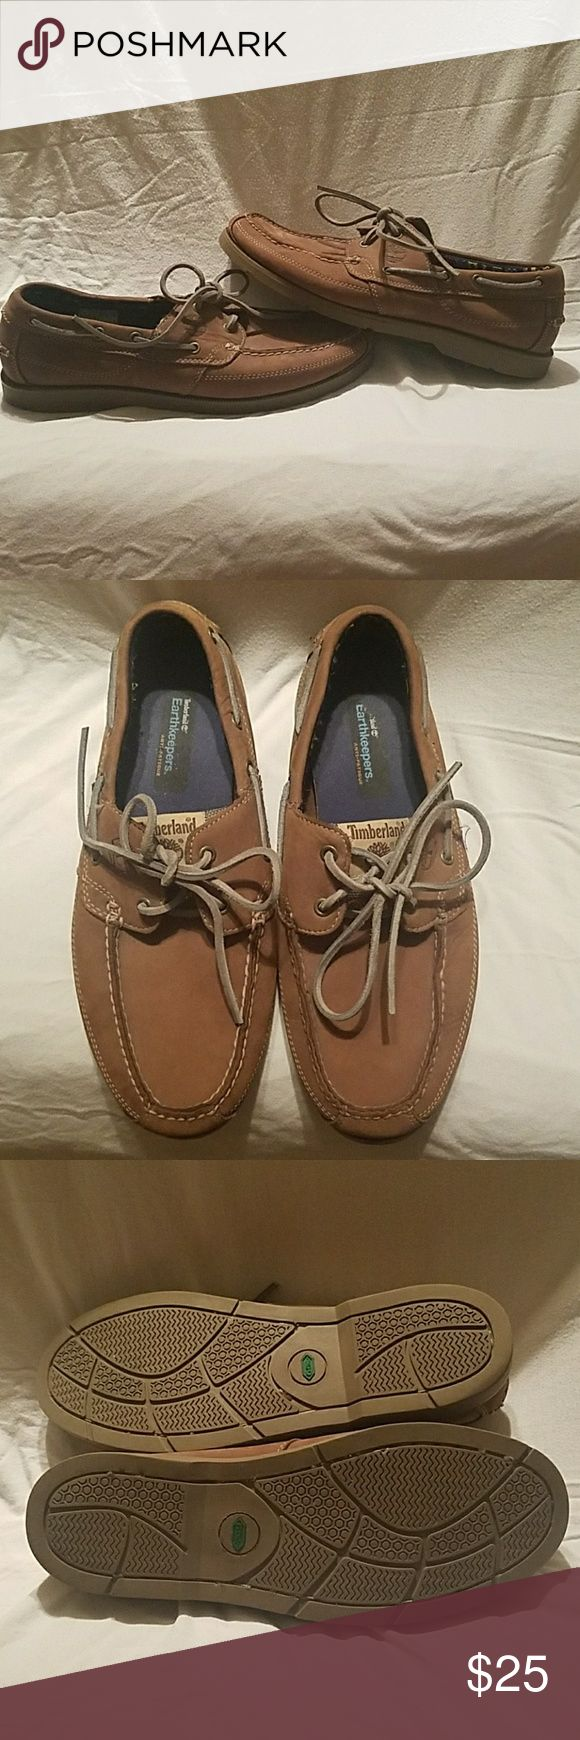 Timberland deck shoes Timberland deck shoes with Earthkeepers anti-fatigue insoles. Very good condition Timberland Shoes Boat Shoes